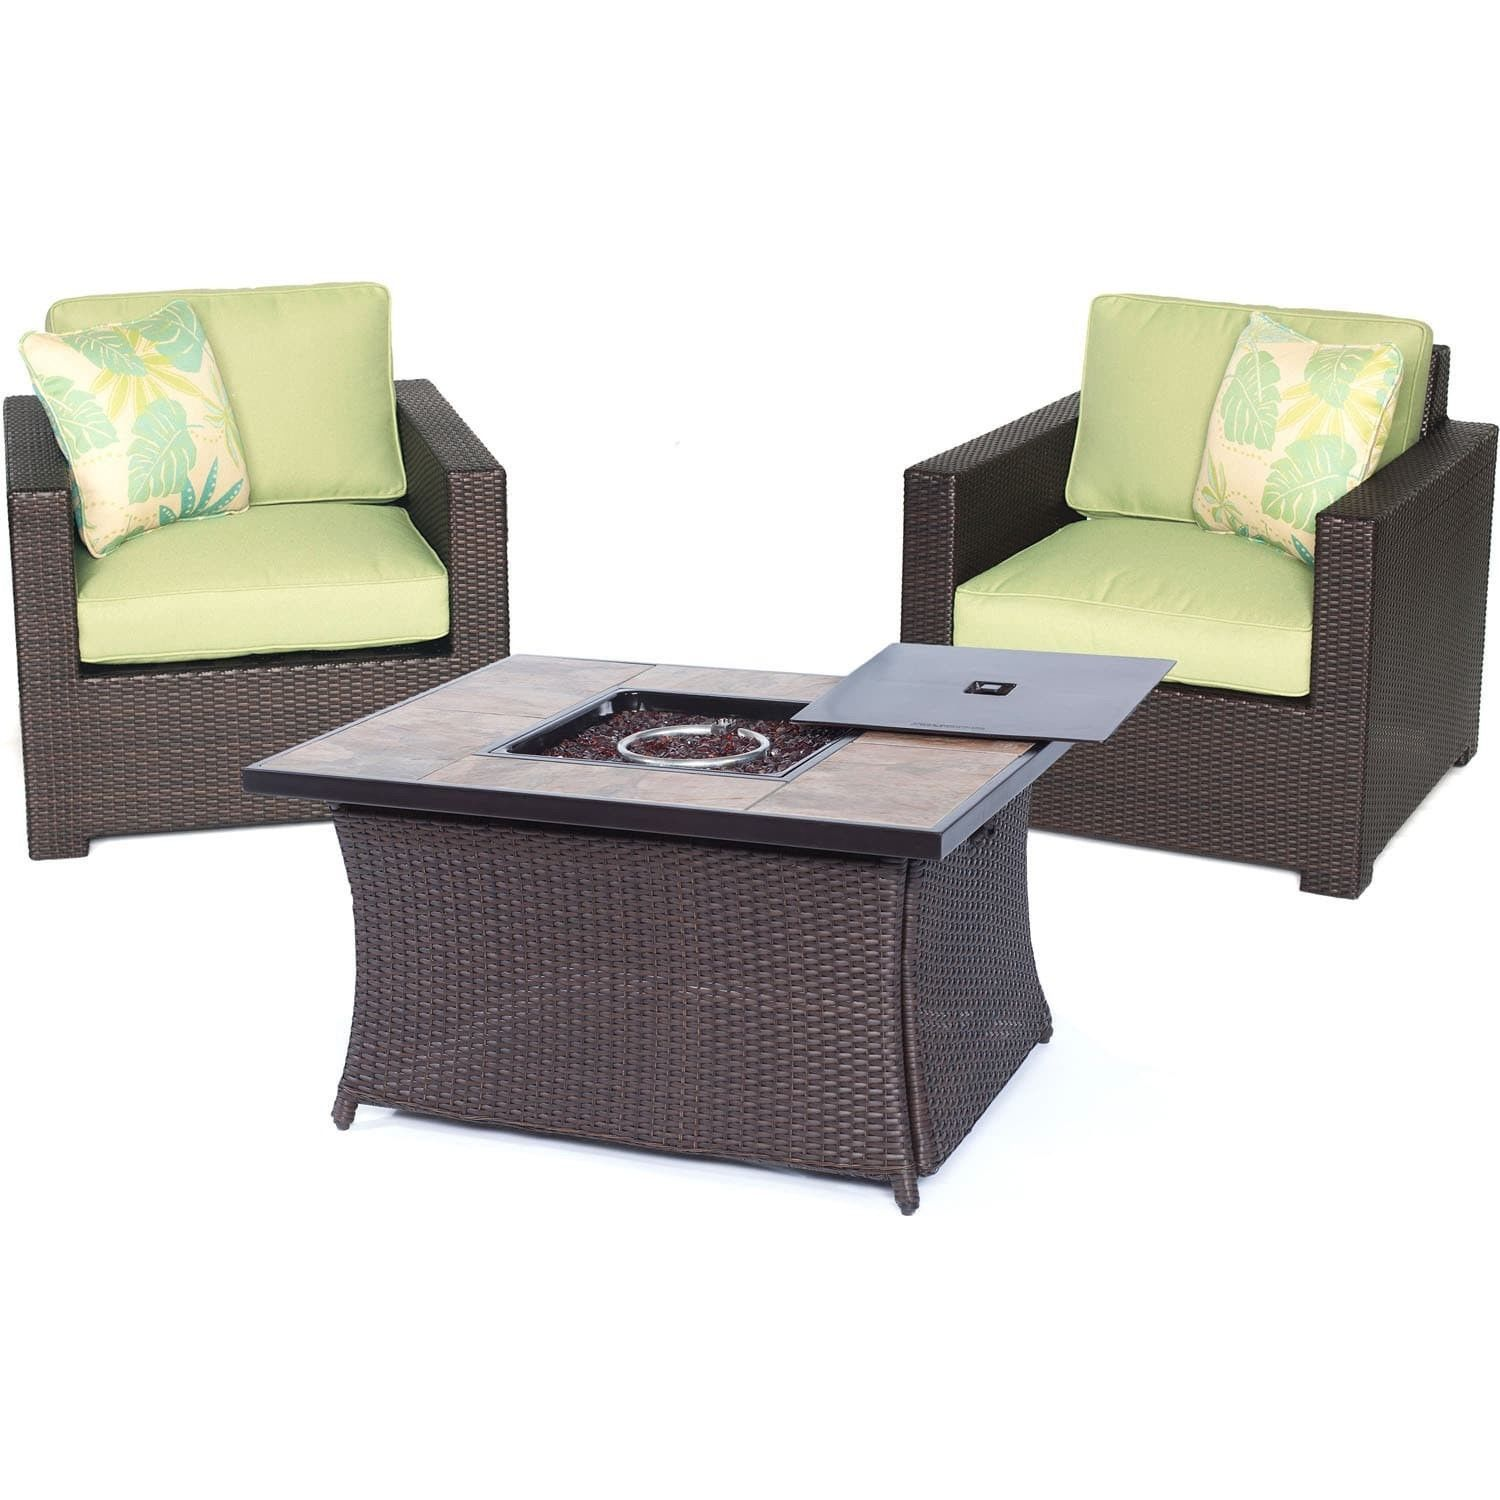 hanover outdoor metropolitan three piece chat set with lp gas fire